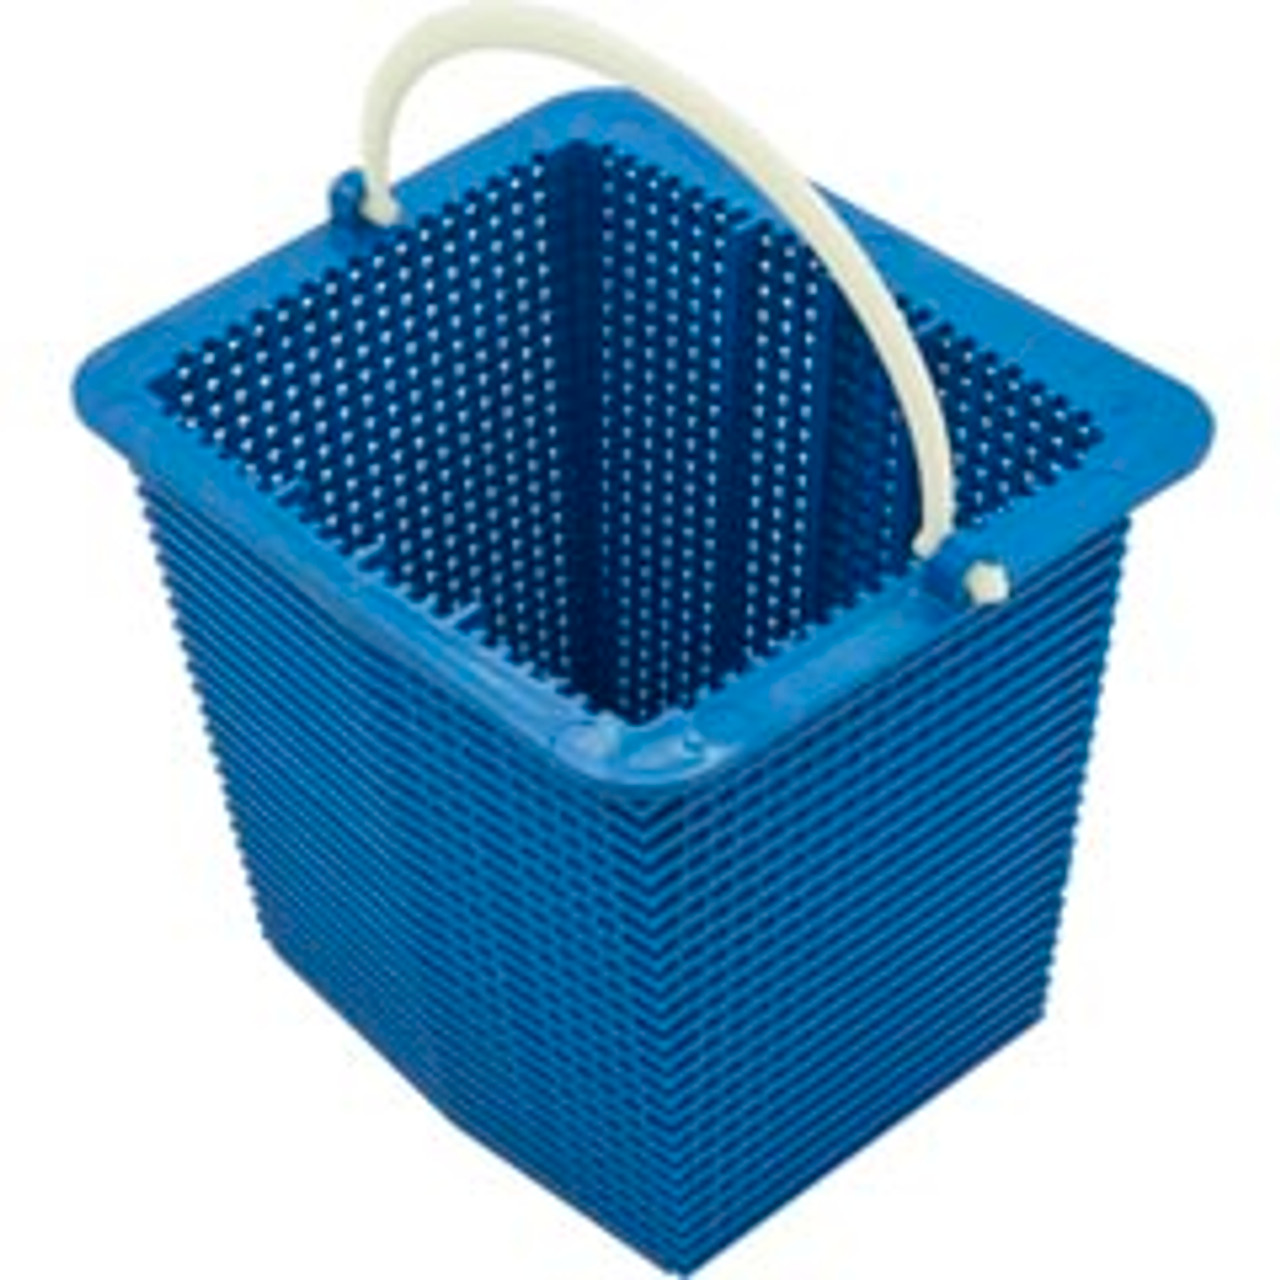 Hayward Generic Super Pump Strainer Basket B-167